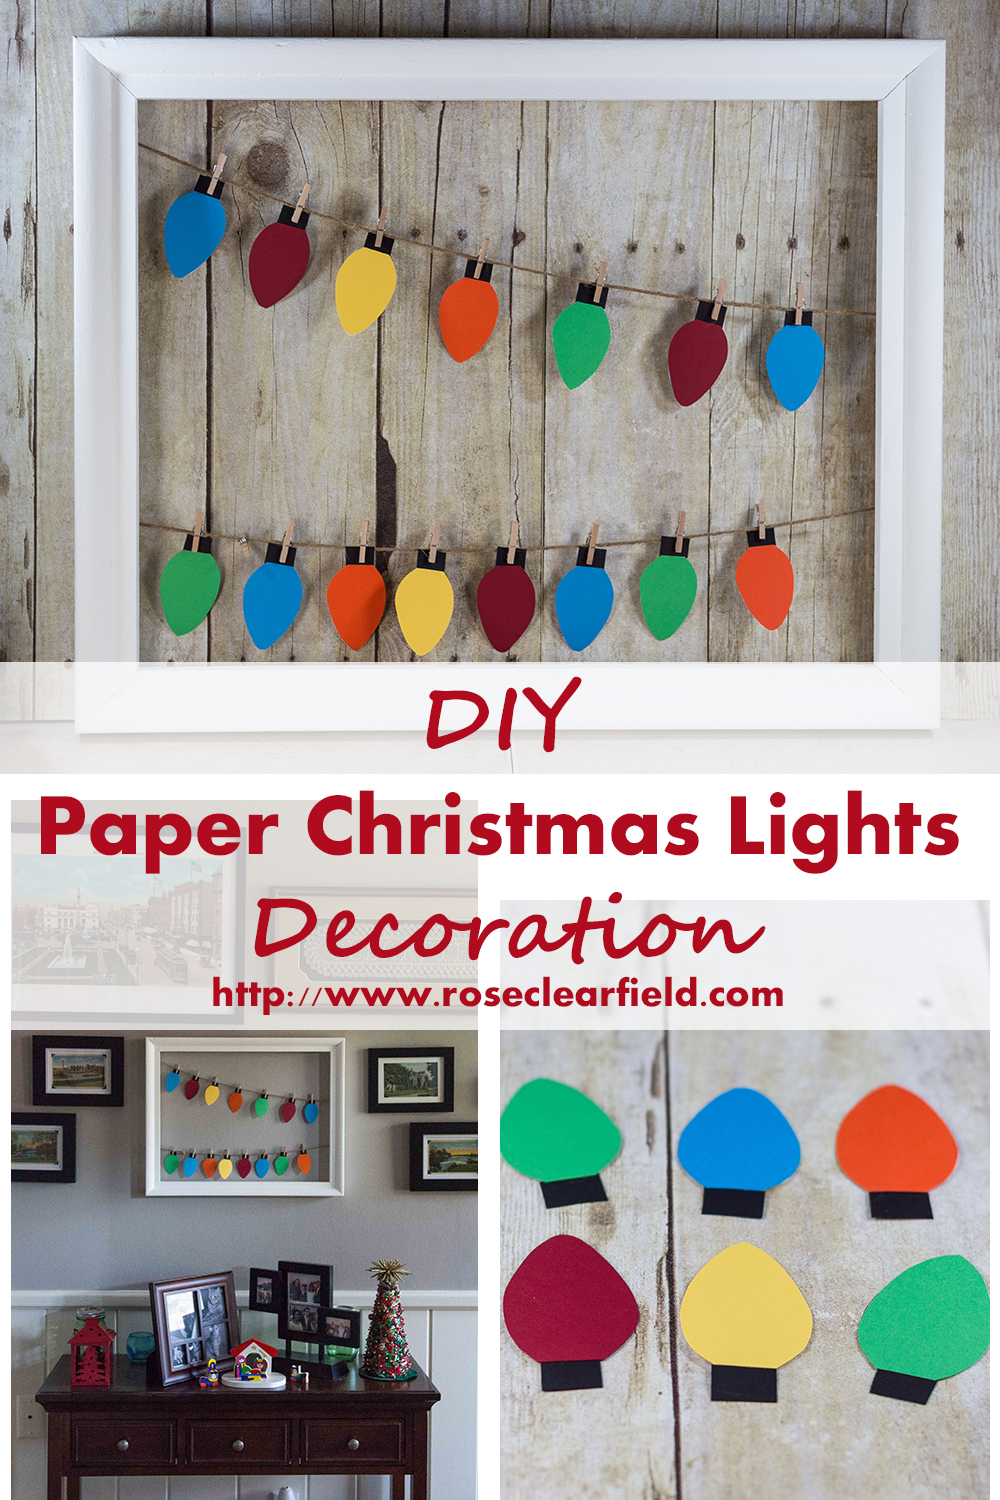 DIY Paper Christmas Lights Decoration Tutorial | http://www.roseclearfield.com